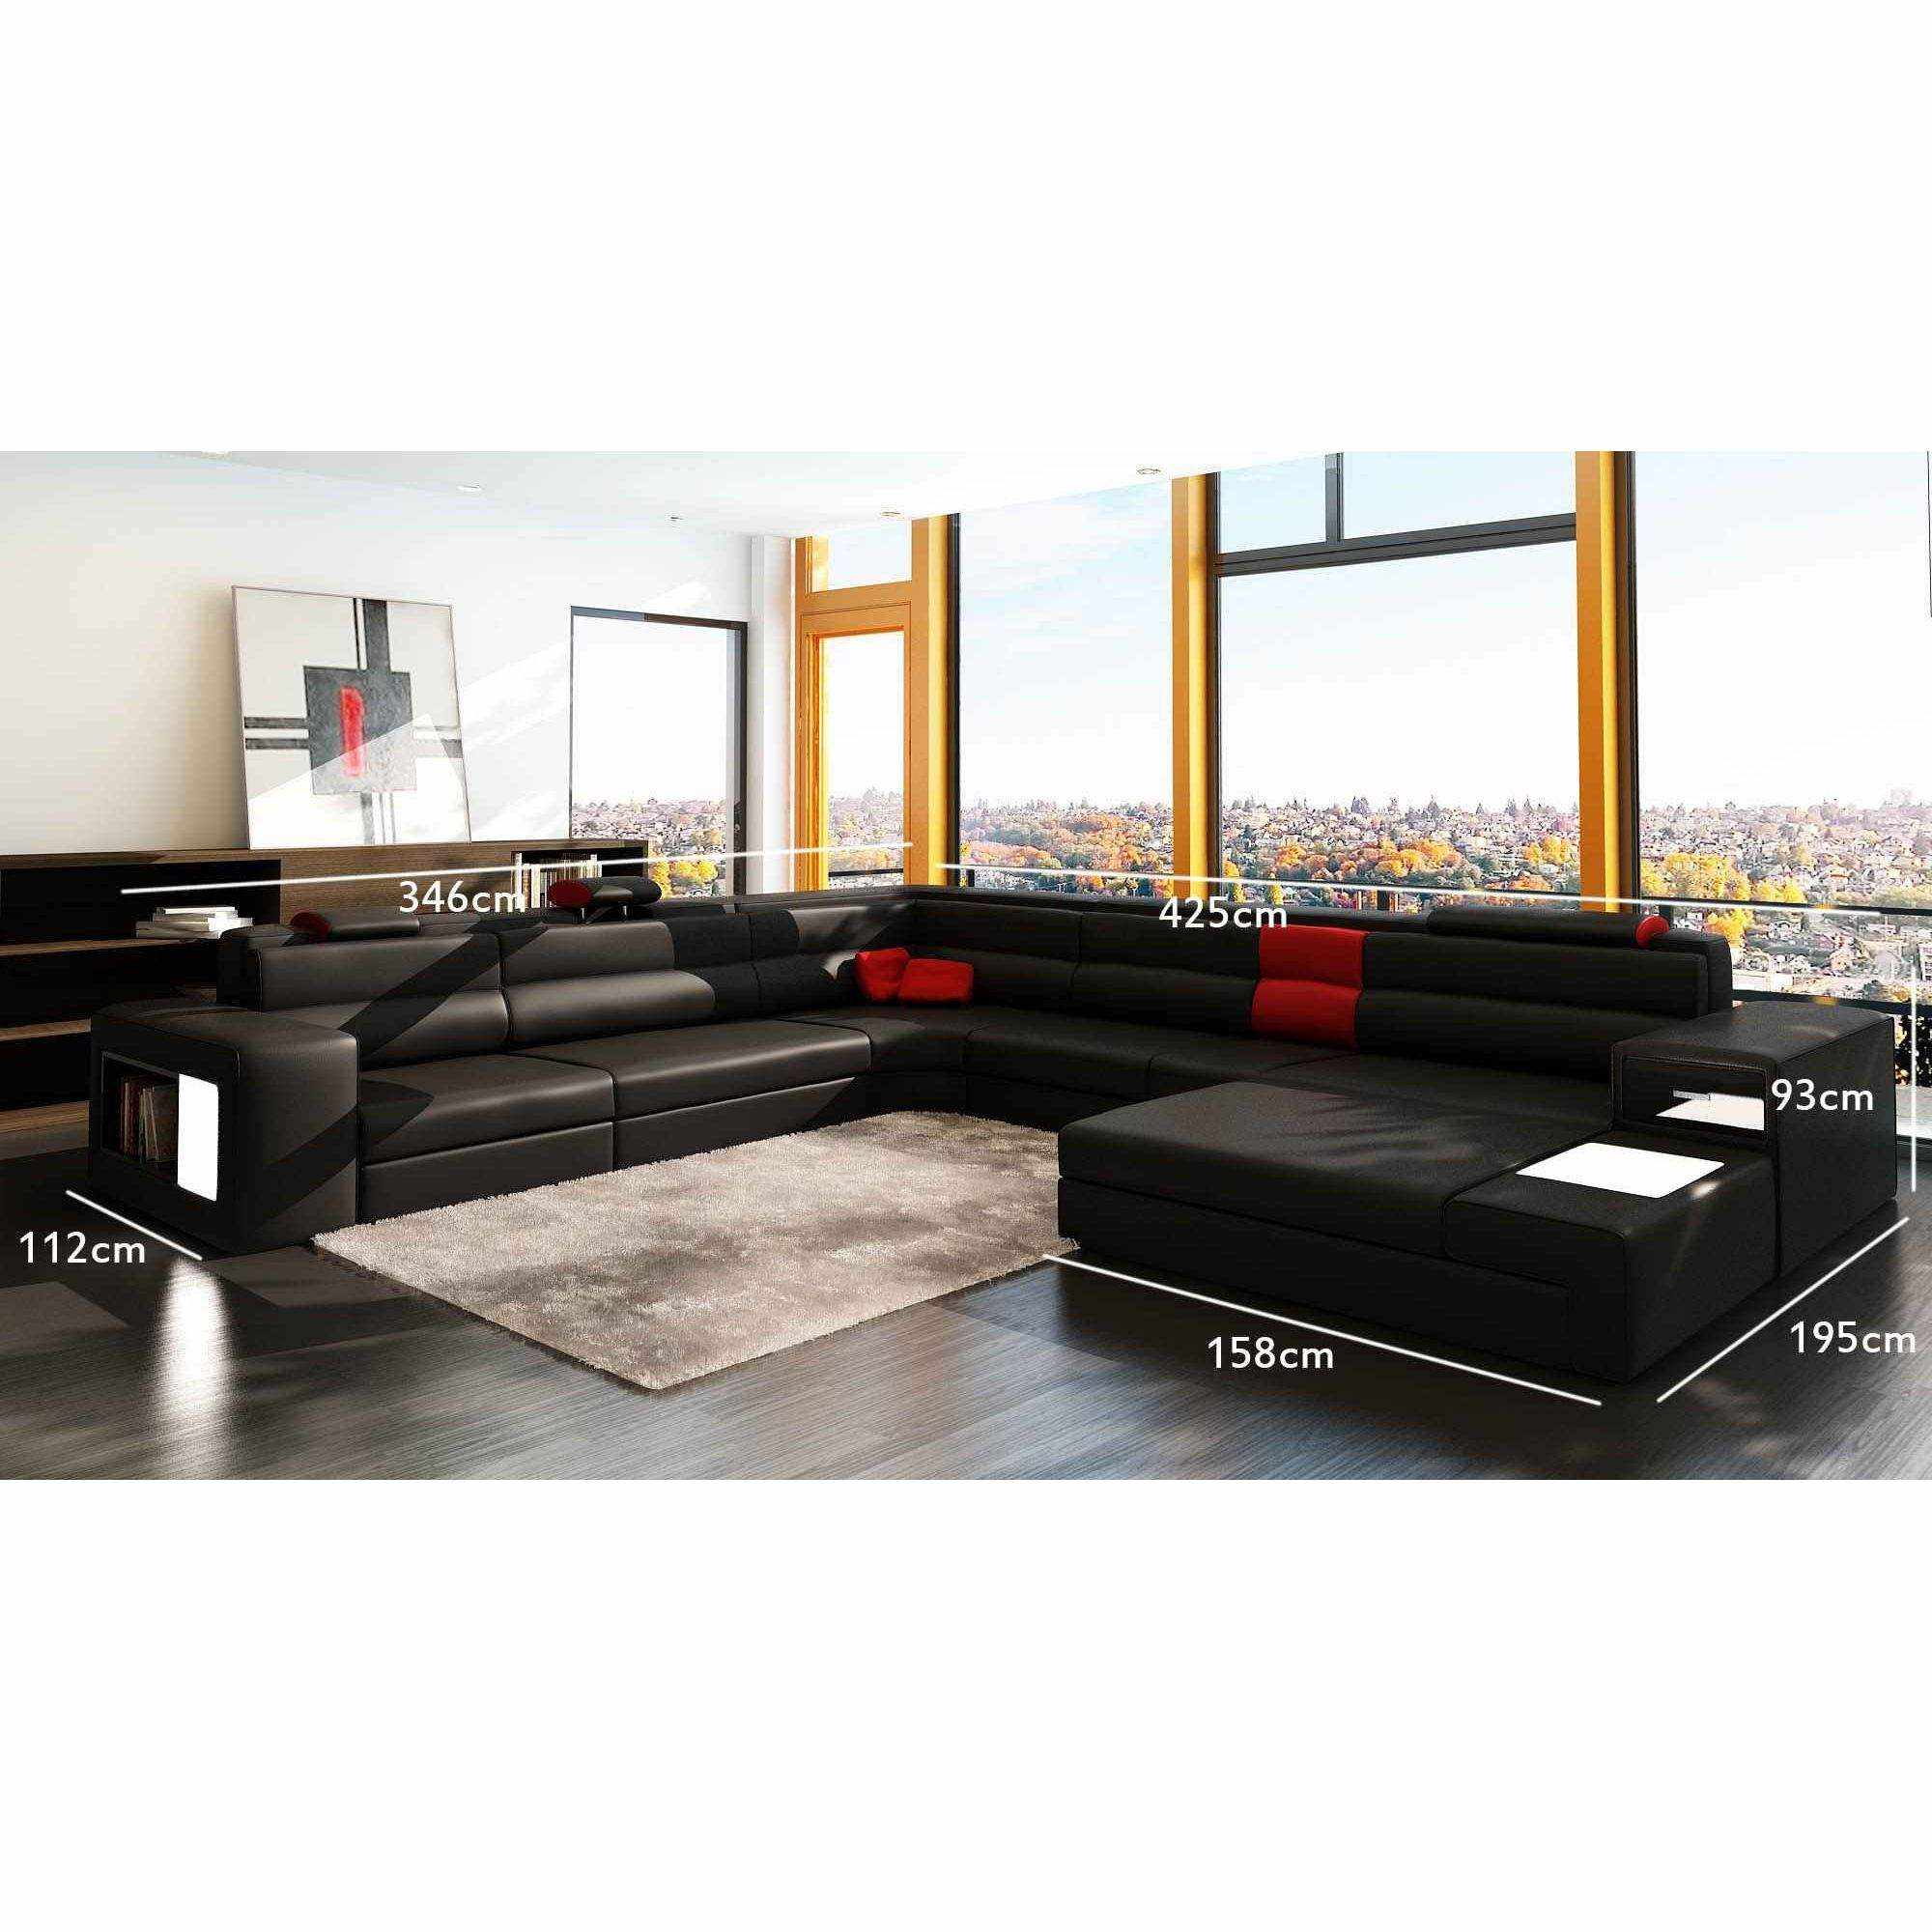 deco in paris canape panoramique noir et rouge angle droit venise can pano angledroit pu. Black Bedroom Furniture Sets. Home Design Ideas